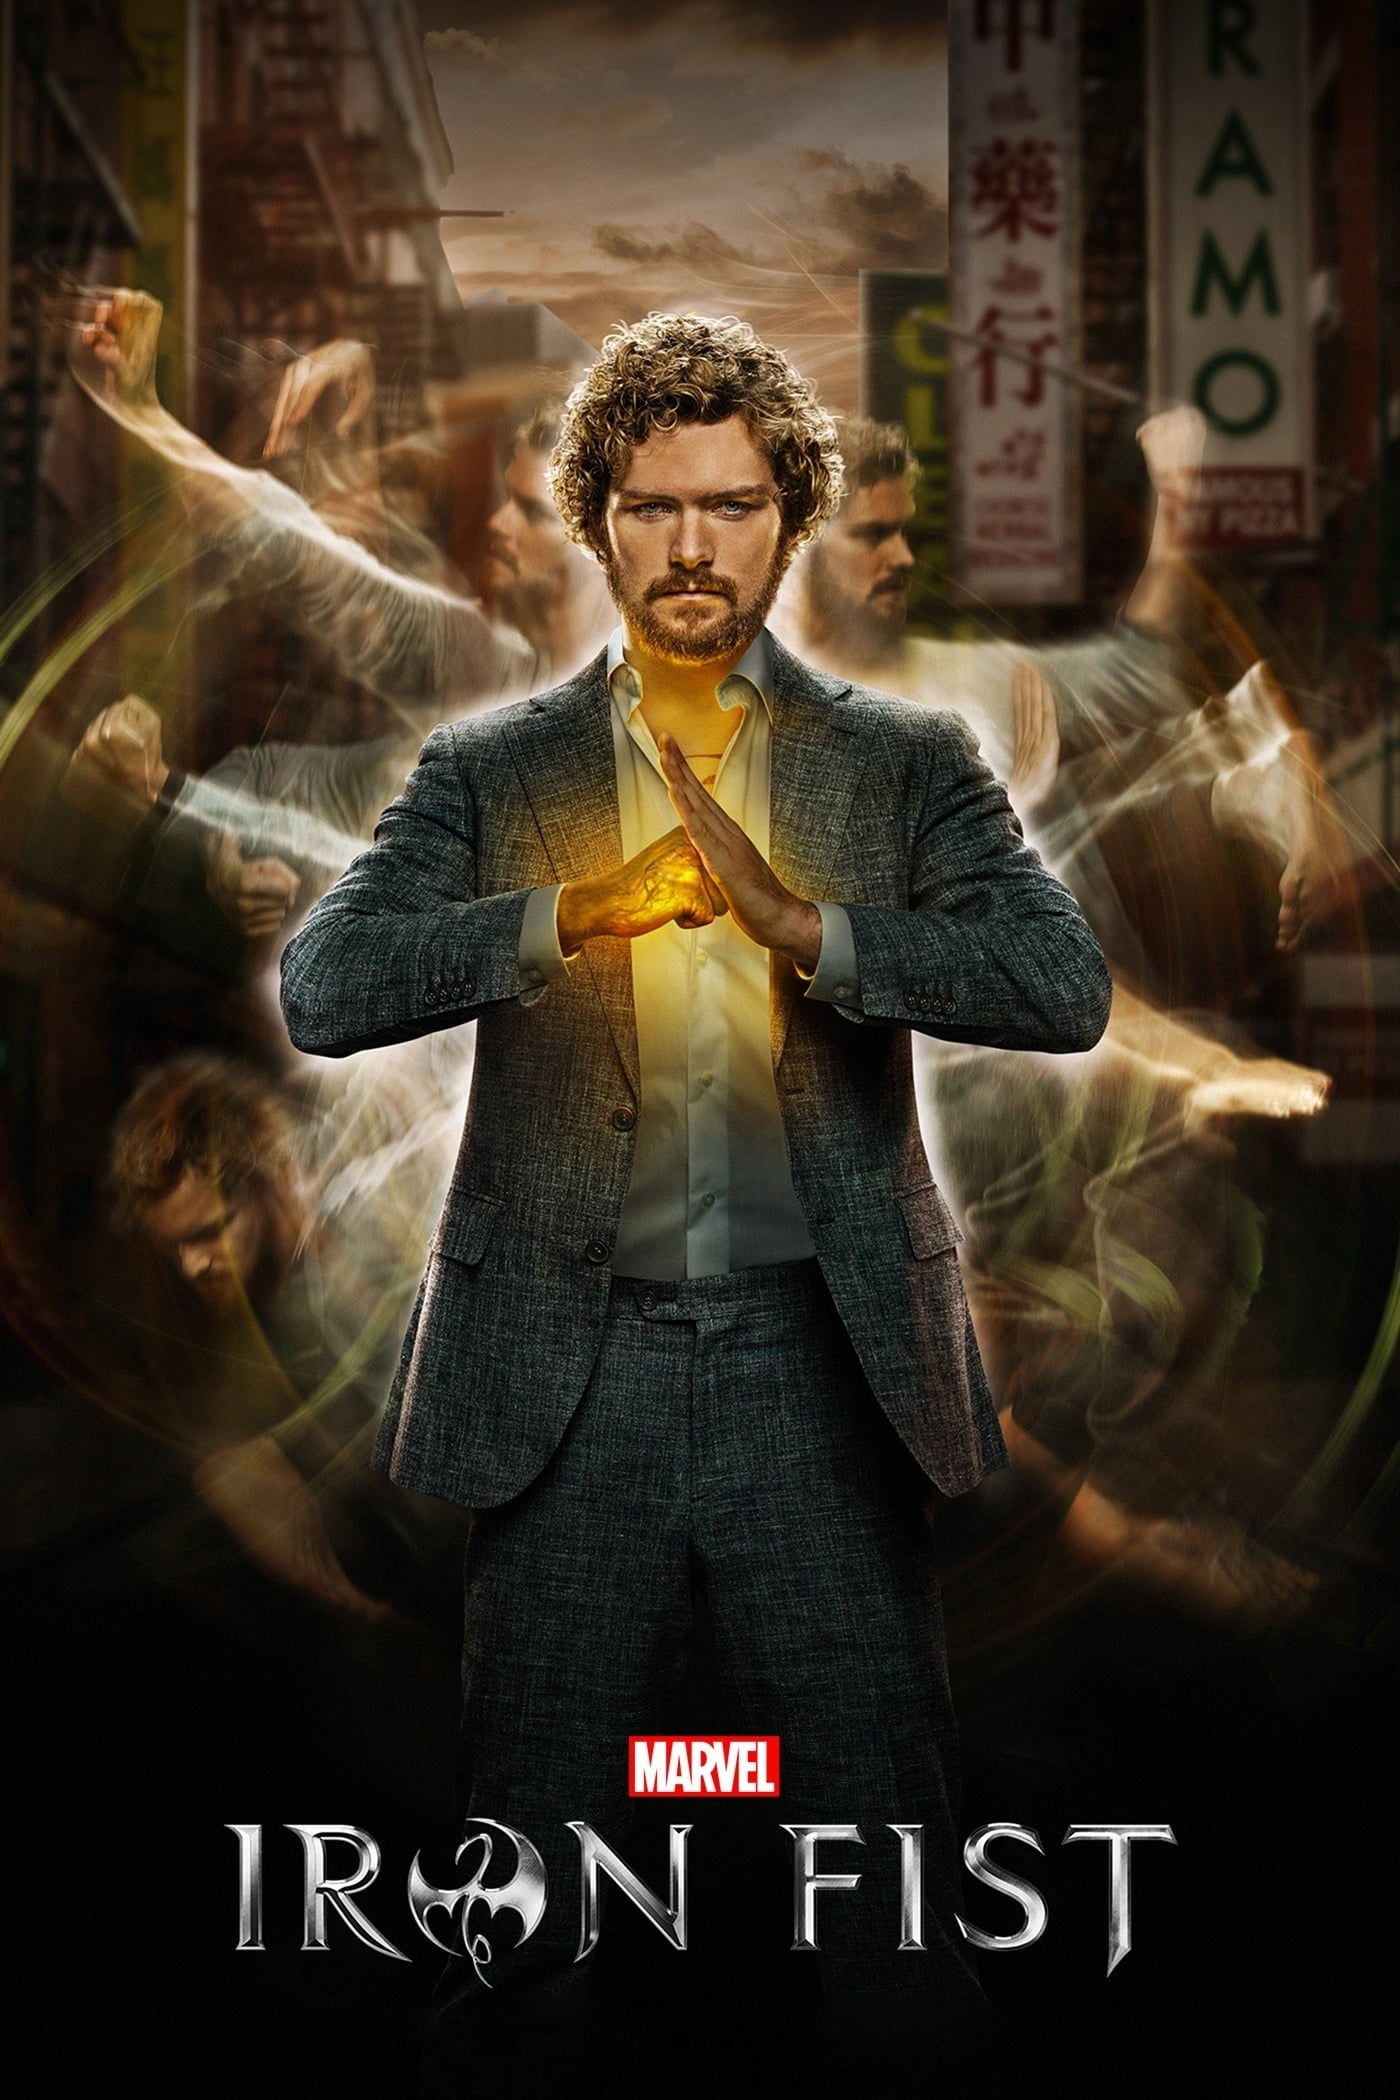 Marvel's Iron Fist TV Shows About Super Power